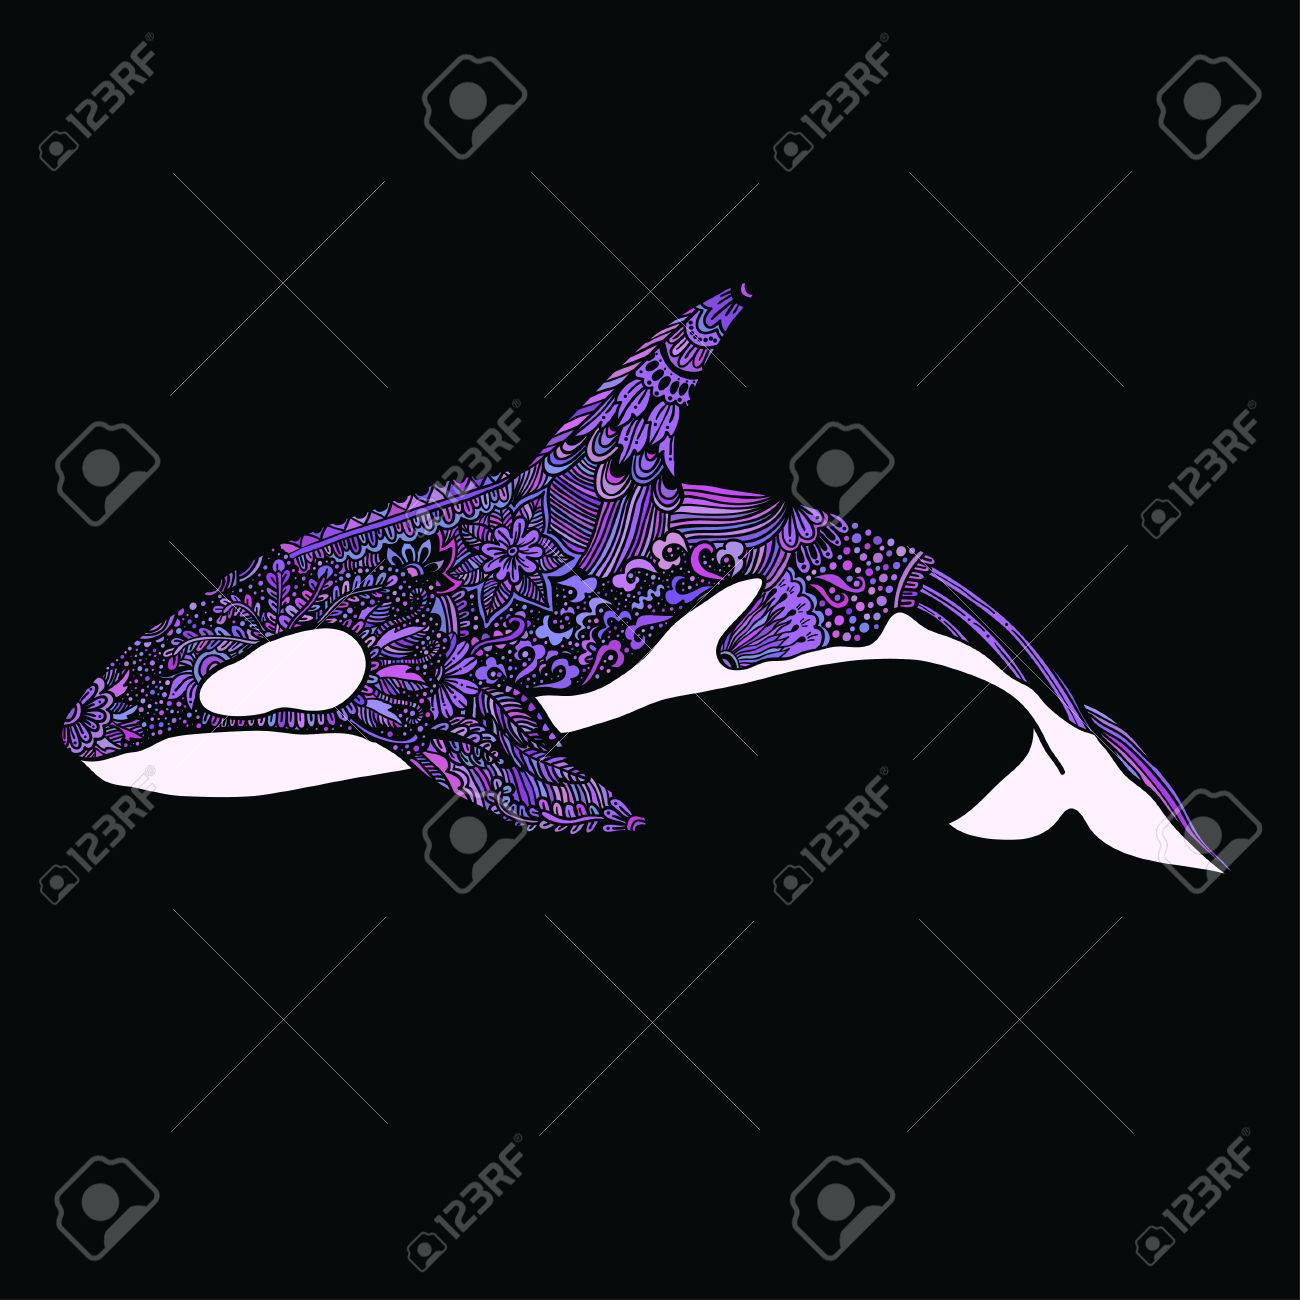 Stock vector ethnic animal doodle detail pattern killer whale - Ethnic Animal Doodle Detail Pattern Killer Whale Illustration Stock Vector 64568548